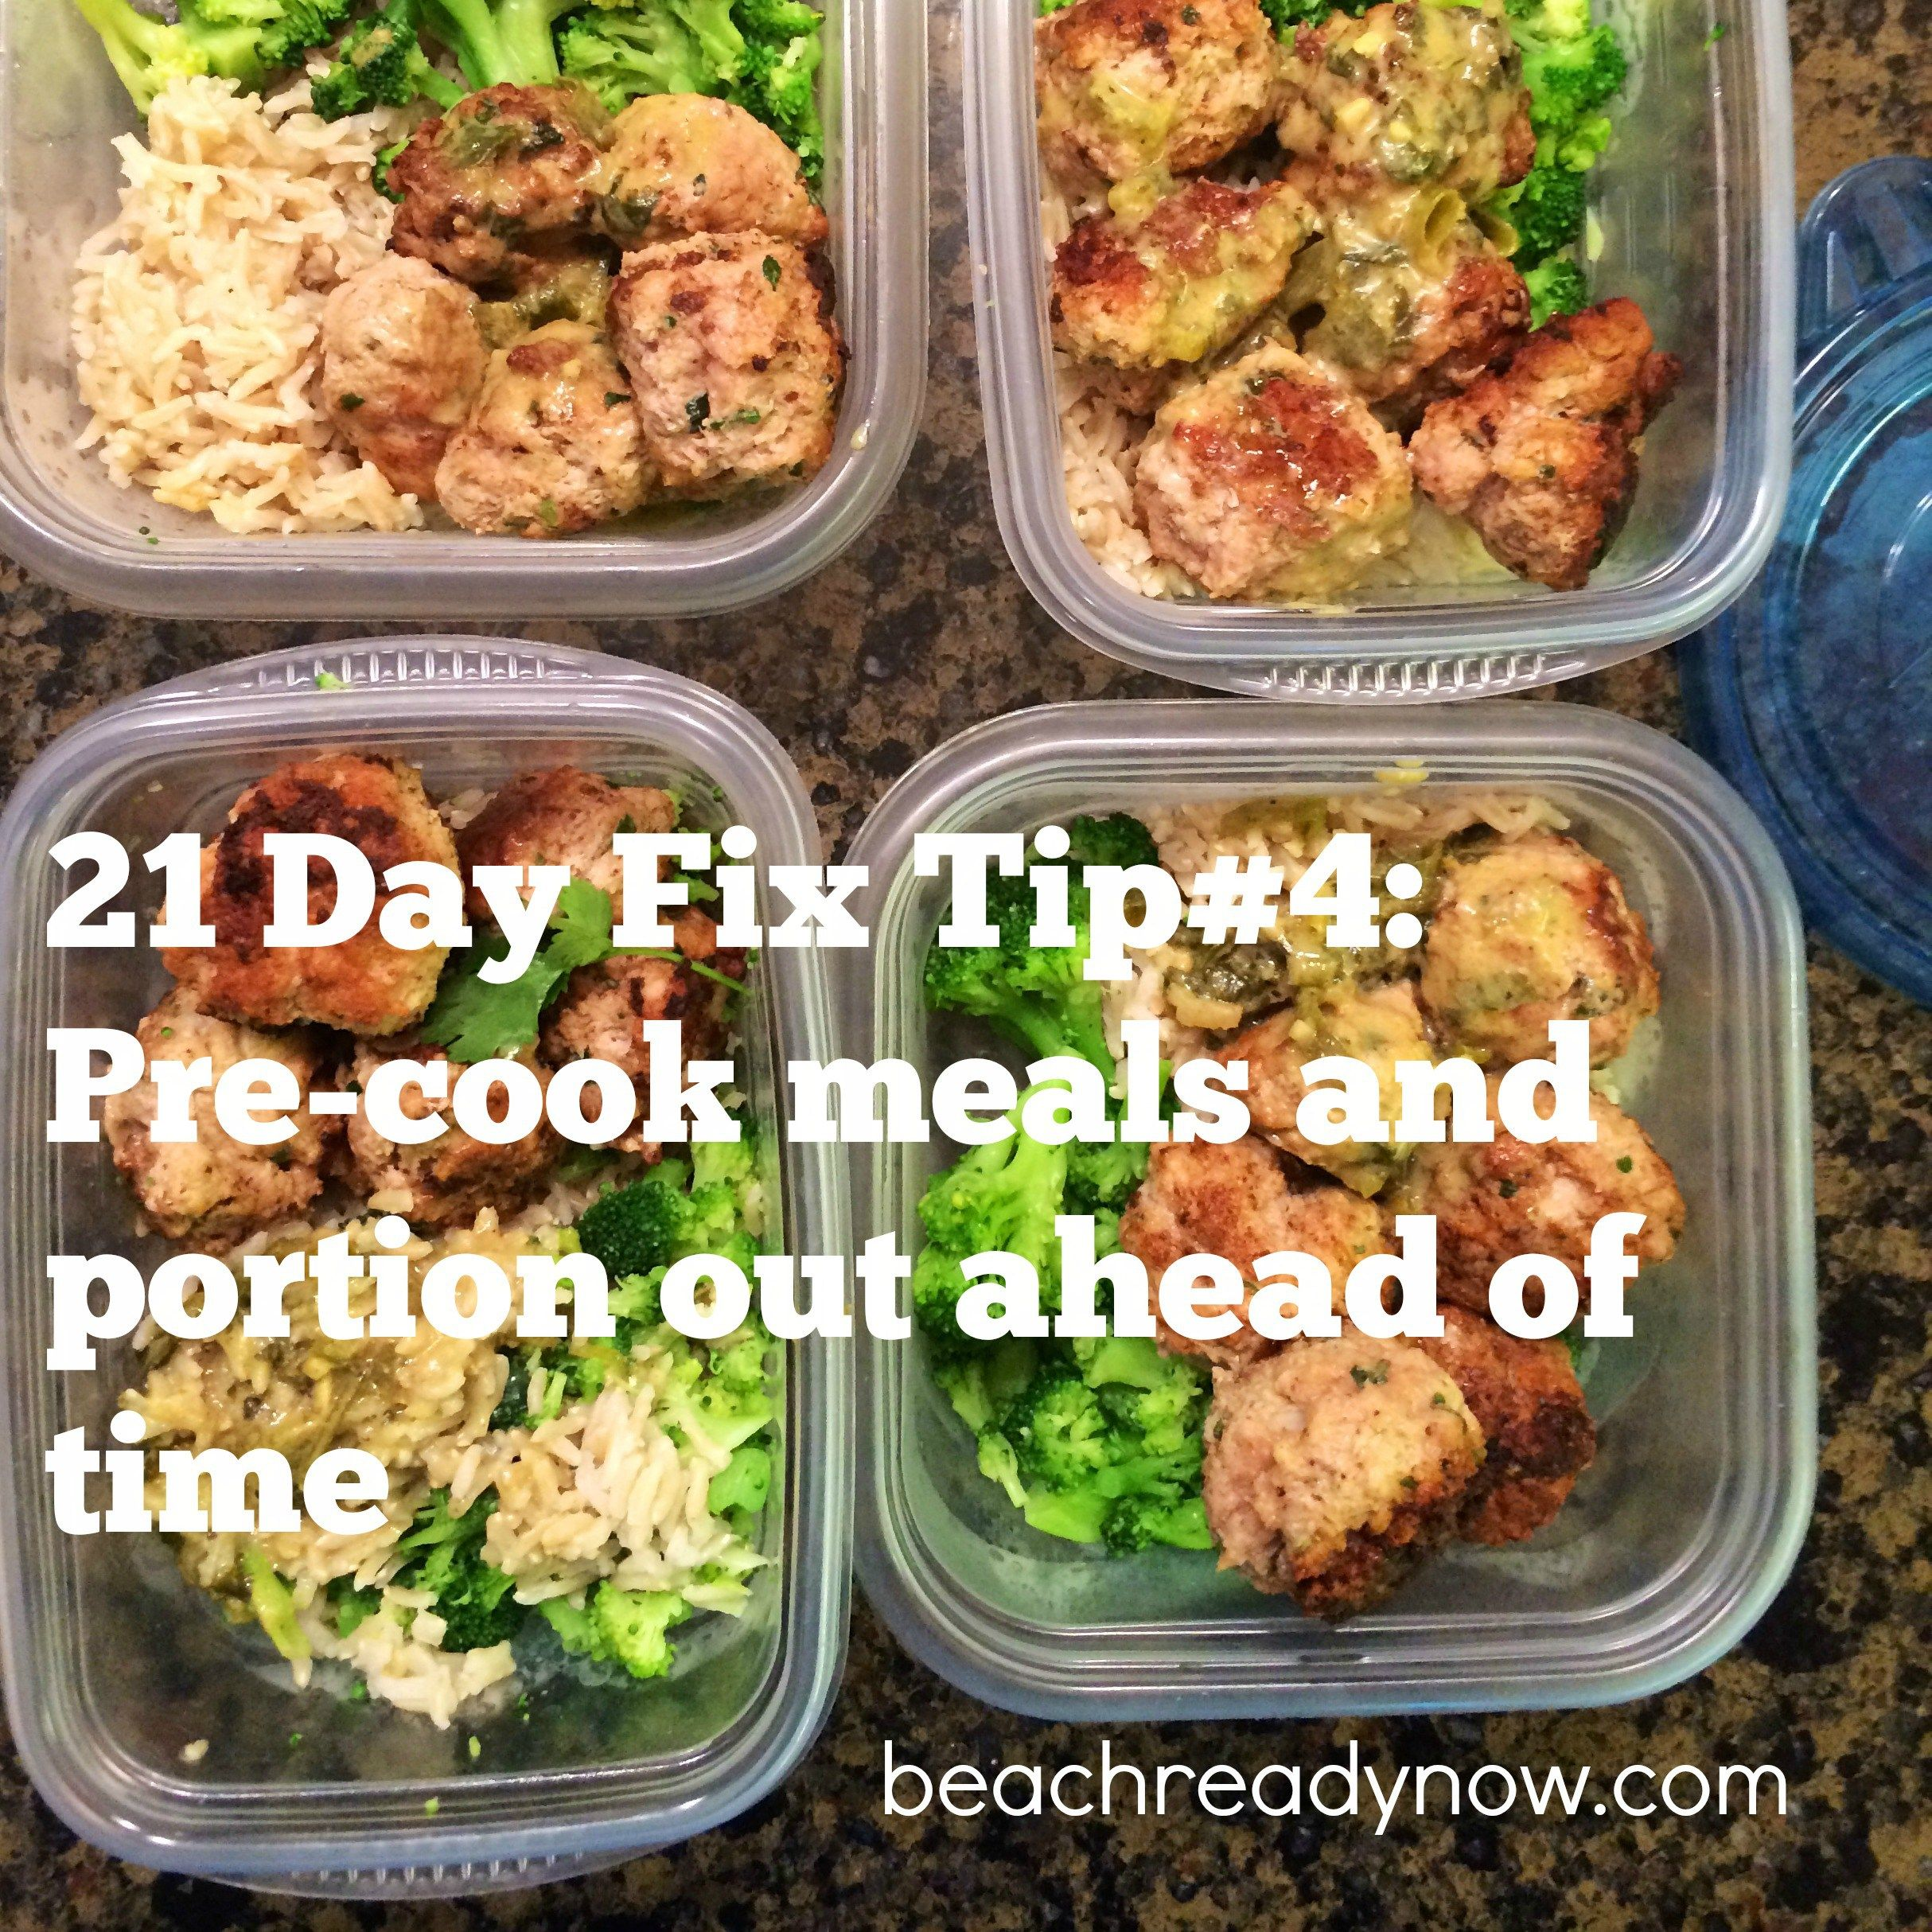 Pin By Carolann Egan On 21 Day Fix Recipes (With Images